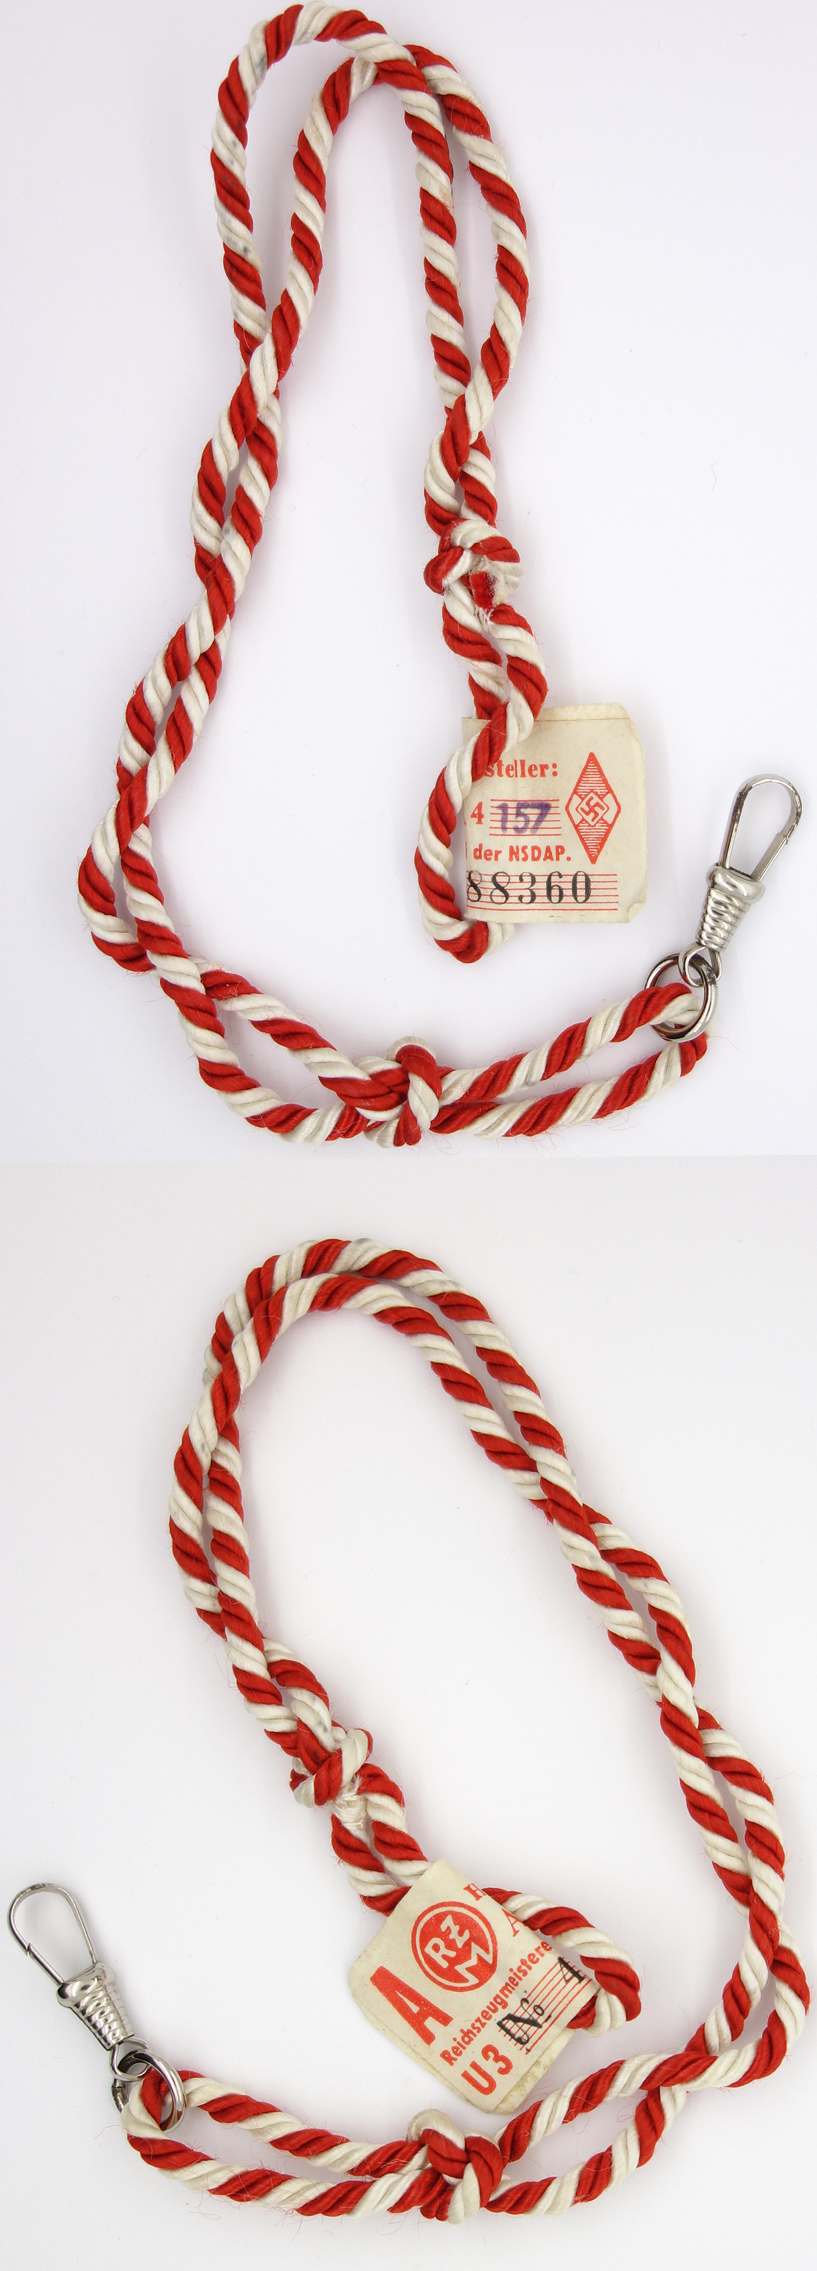 Tagged HJ/DL leader Lanyard